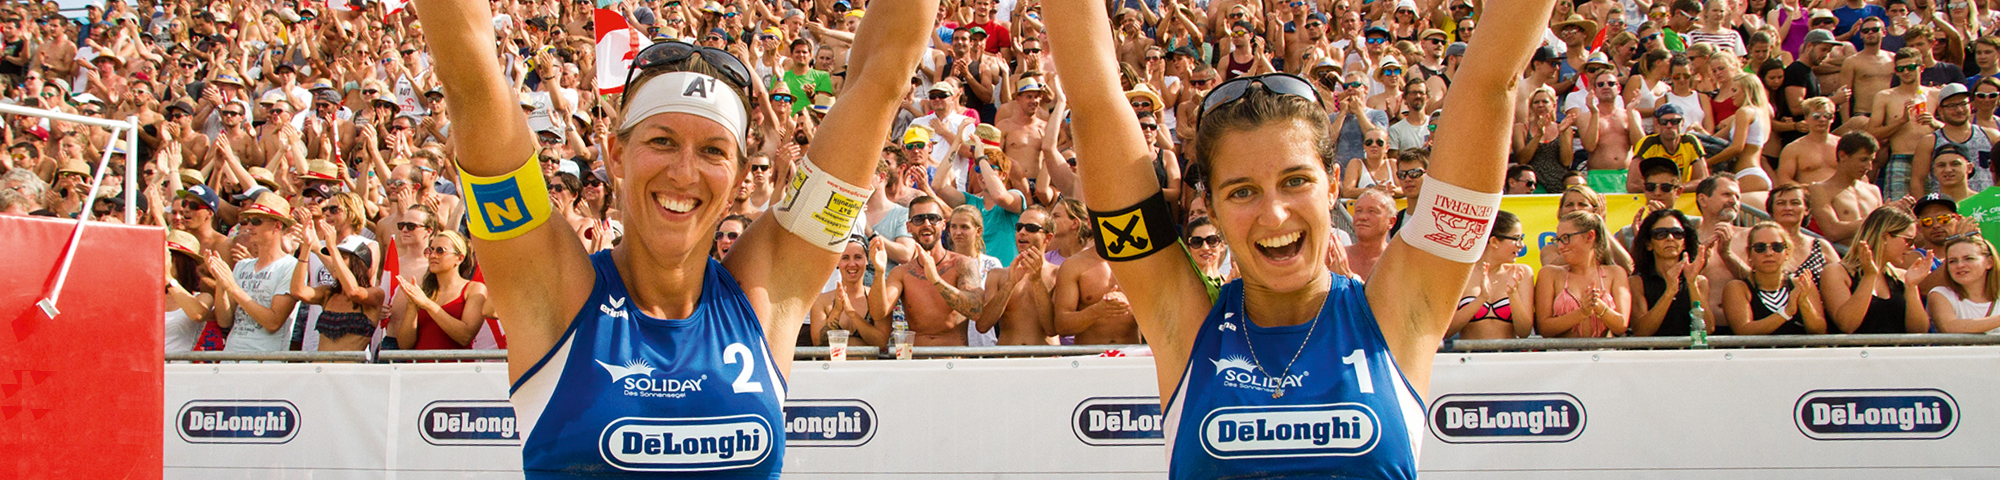 Austrian Beach Tour Header 05 © PRO Beach Battle / Austrian Beachtour